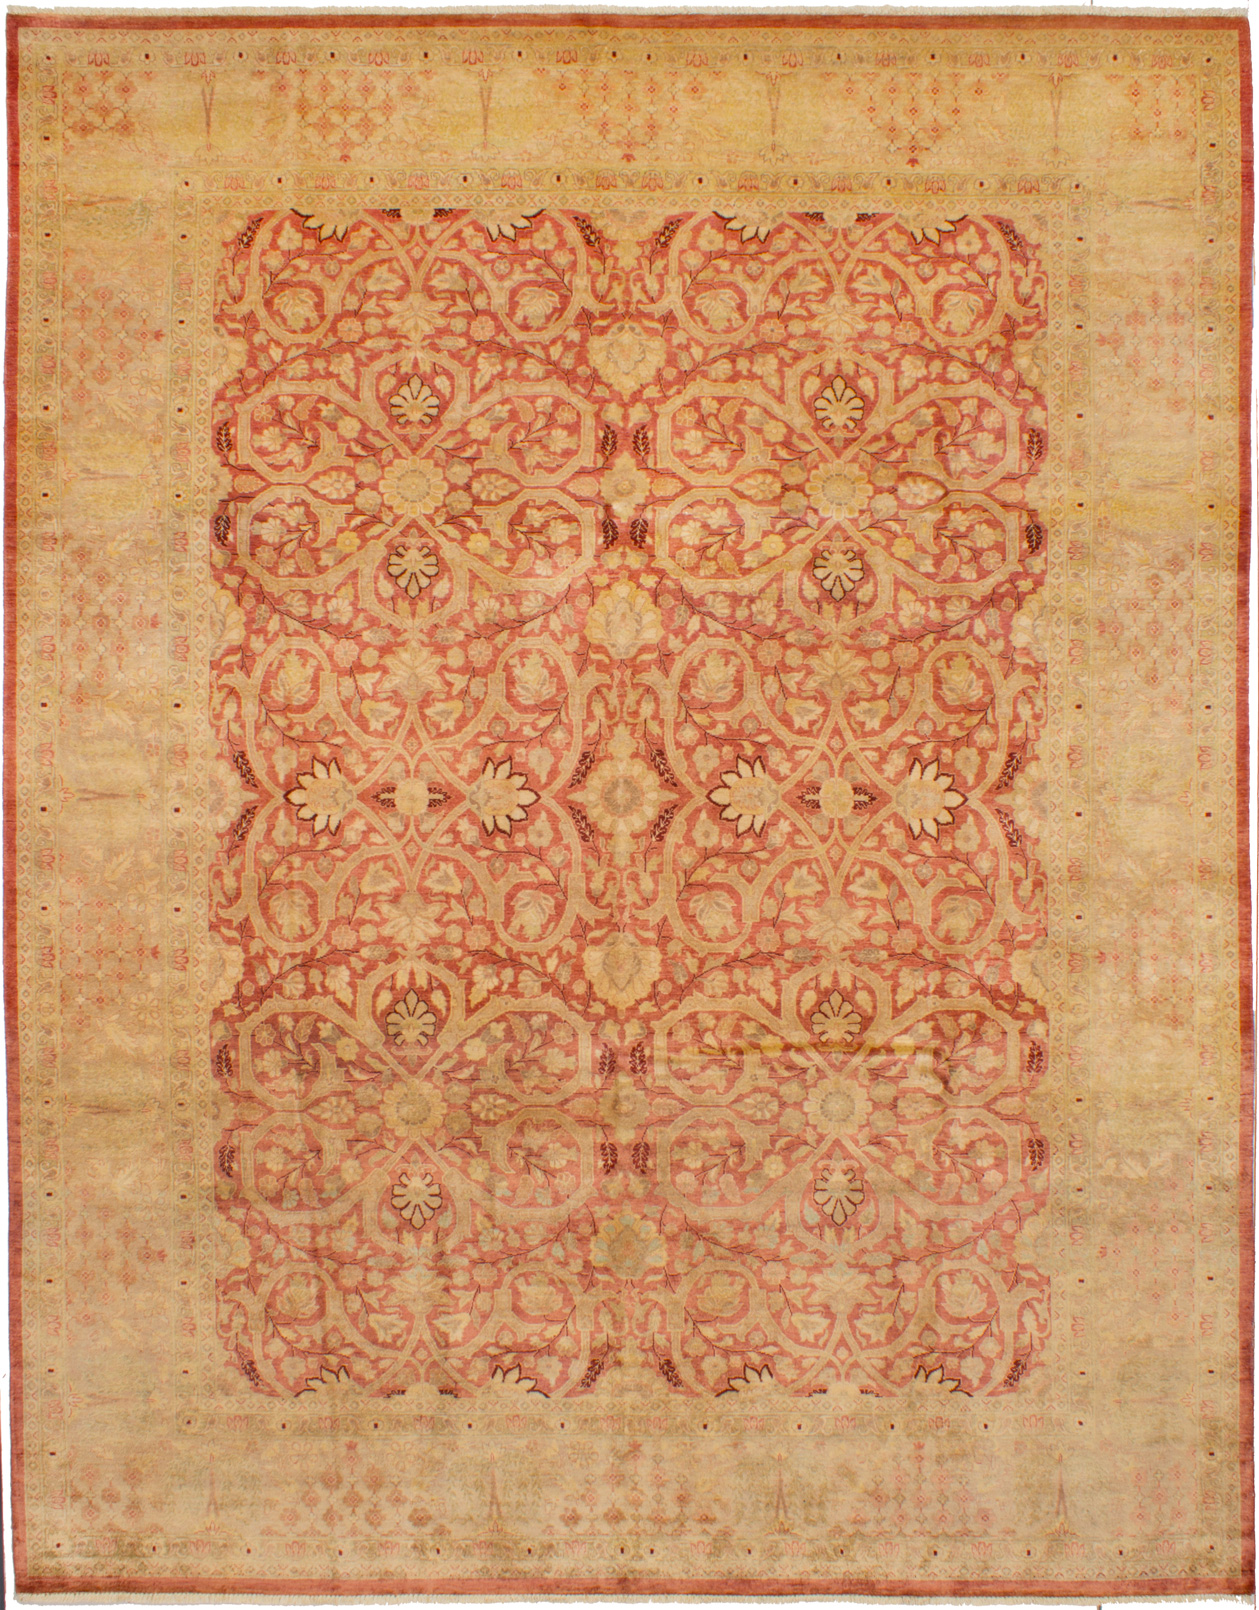 Hand-knotted Peshawar Finest Dark Pink Wool Rug 8'11in x 11'4in at RugsBySize.com